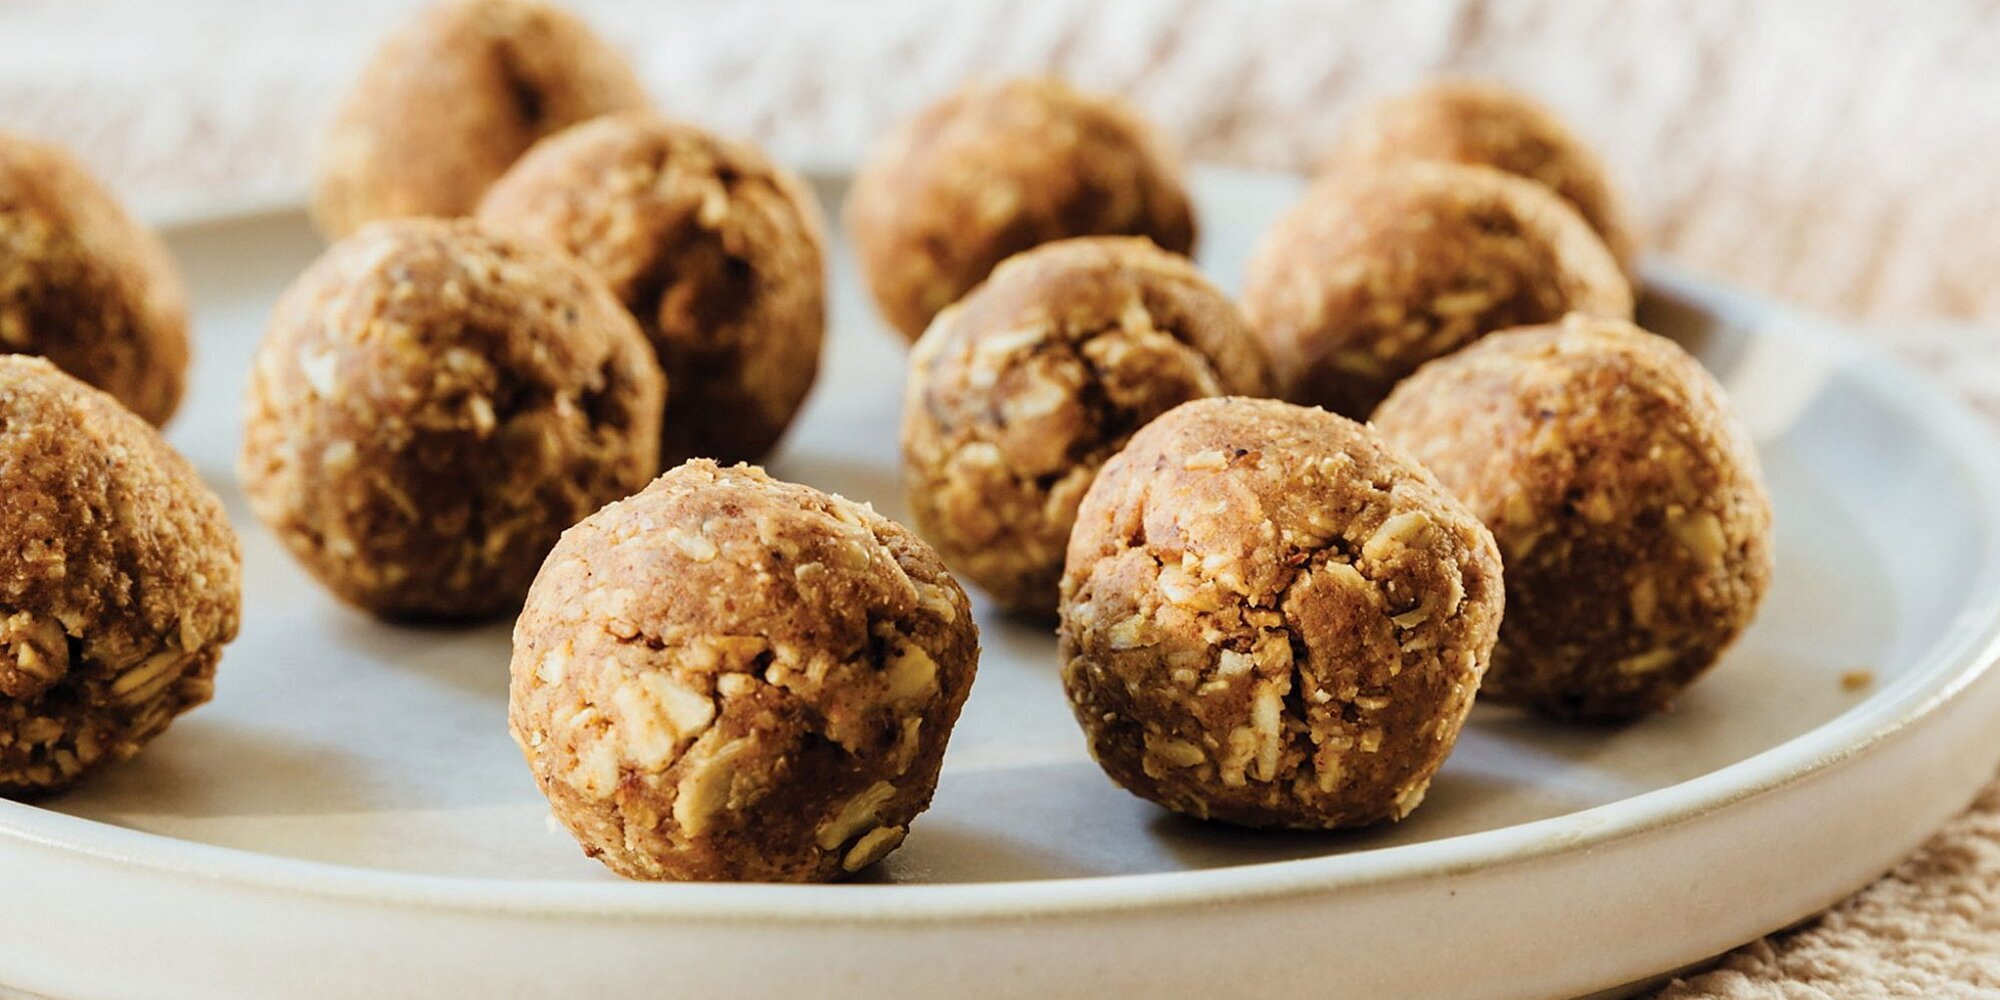 These 3-Ingredient Almond Oat Energy Bites Are Simple, Anyone Can Make Them